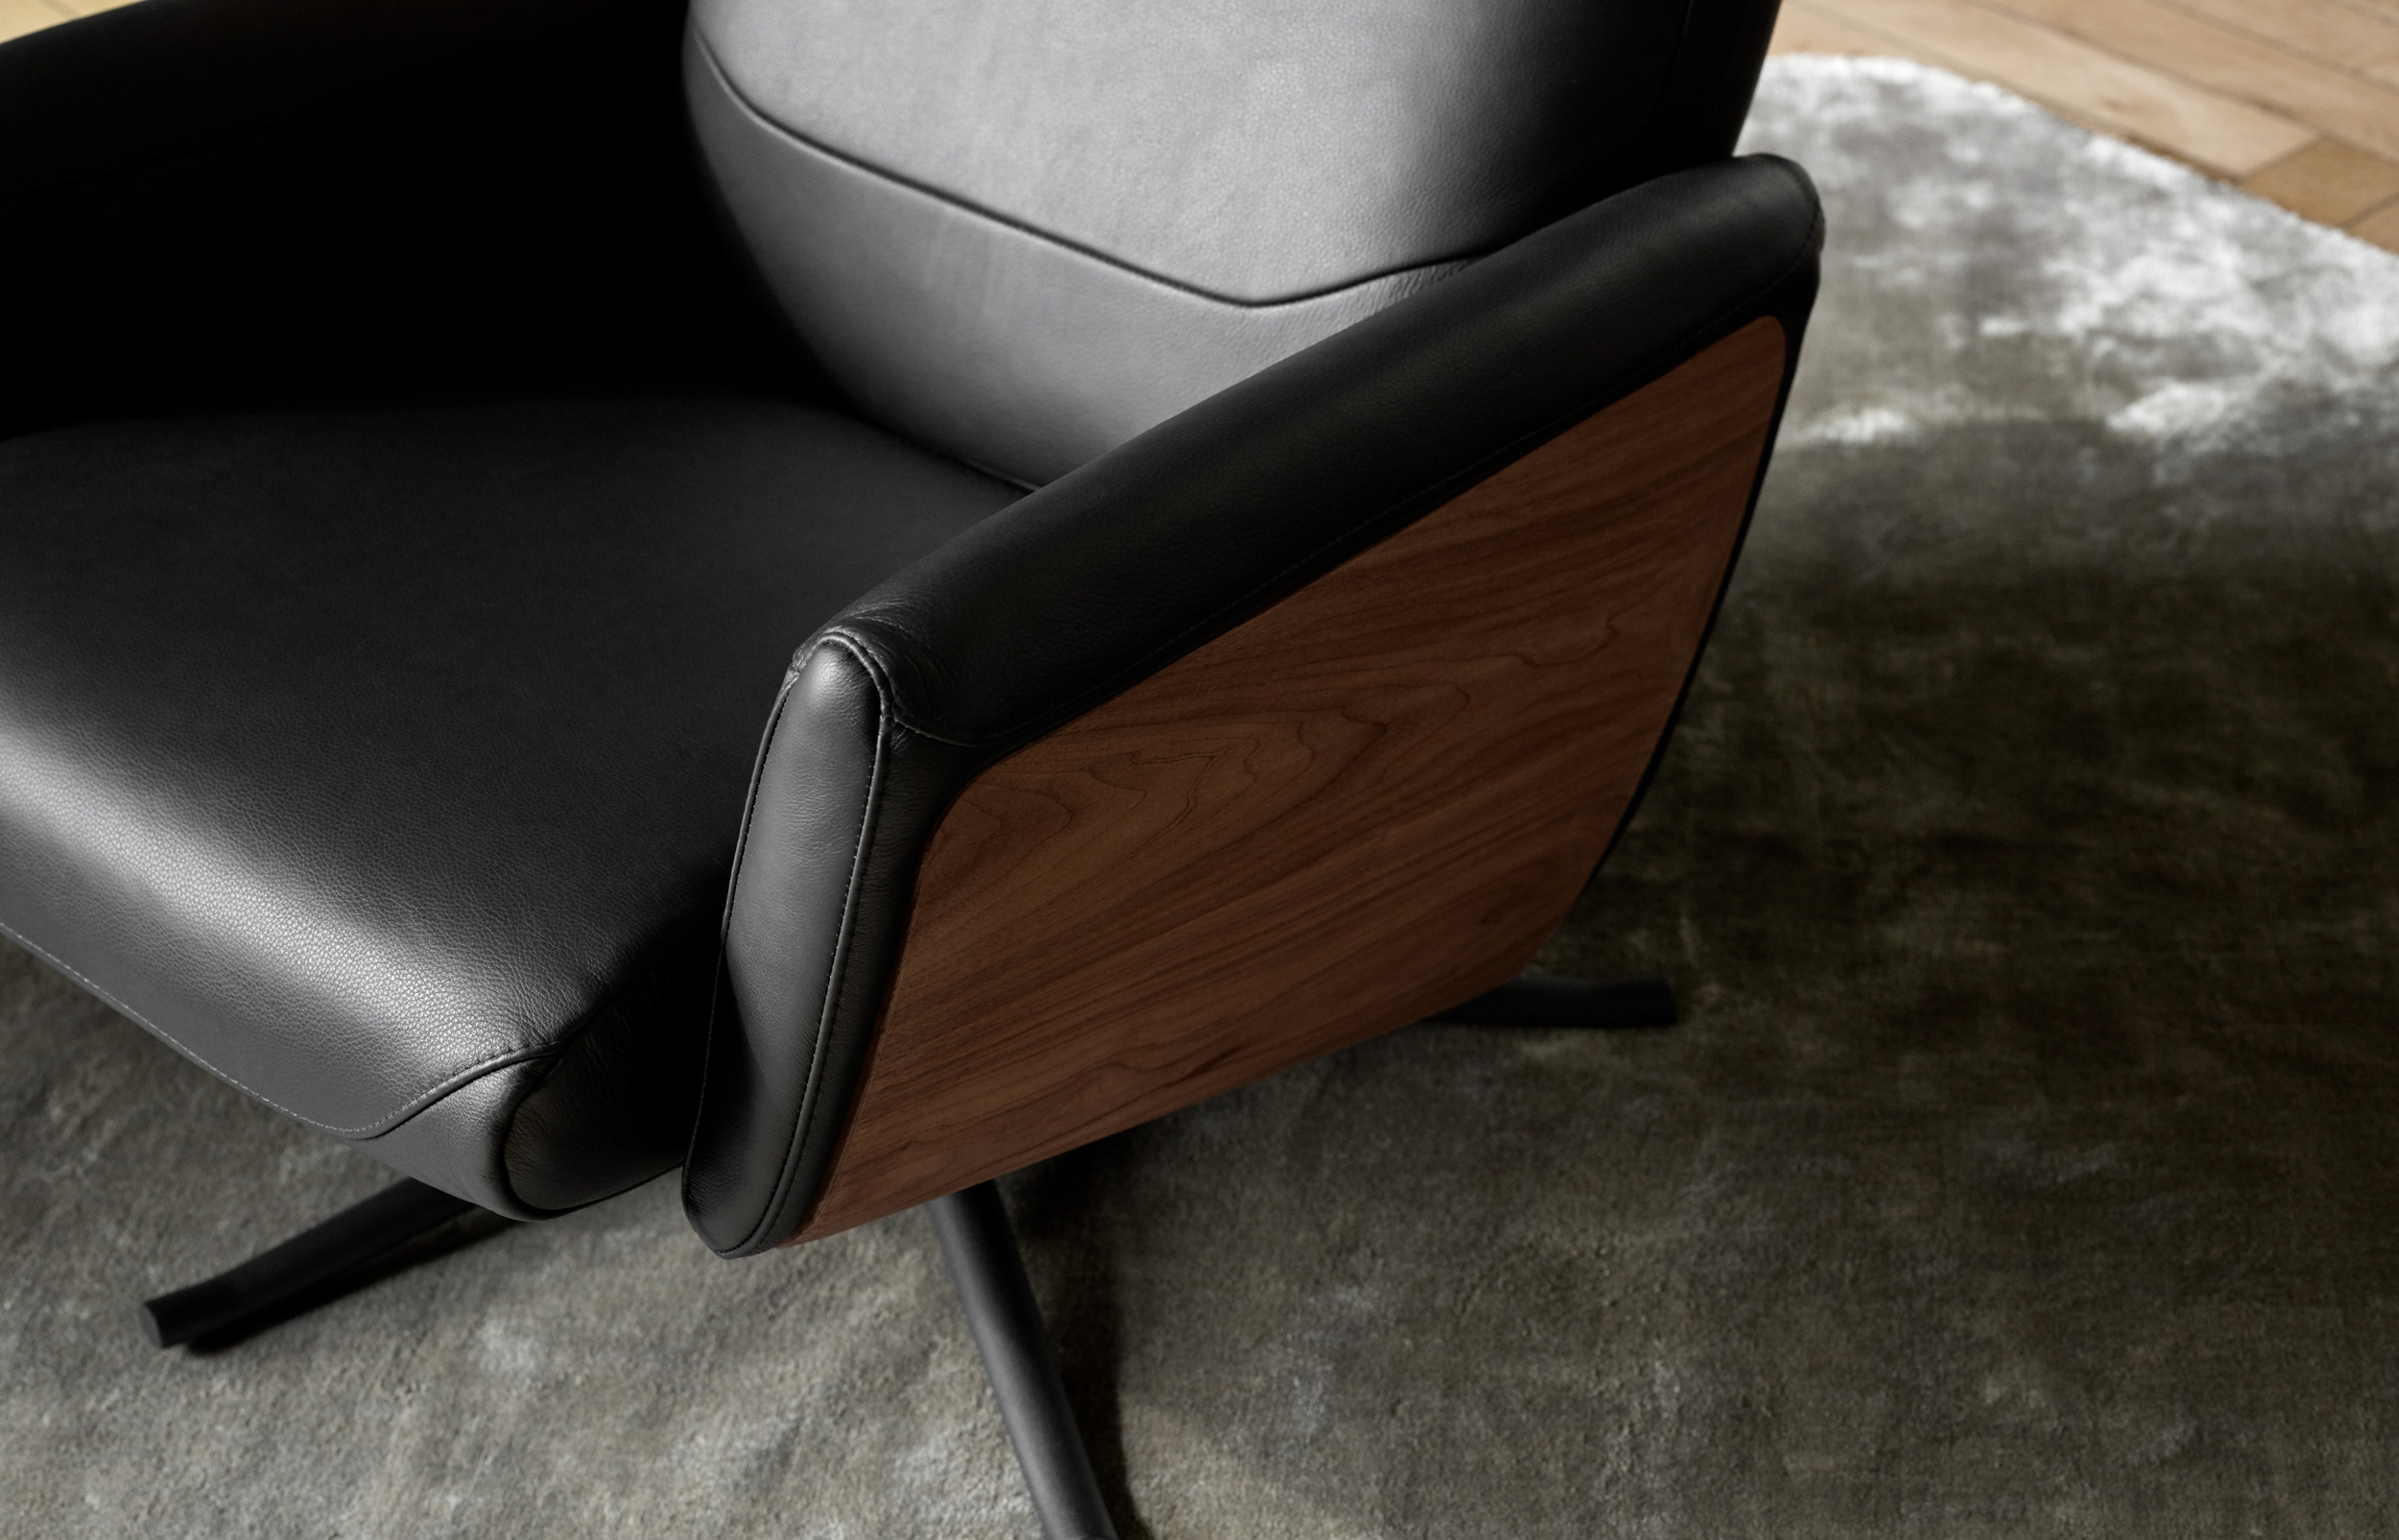 Recliner seat in leather and wood